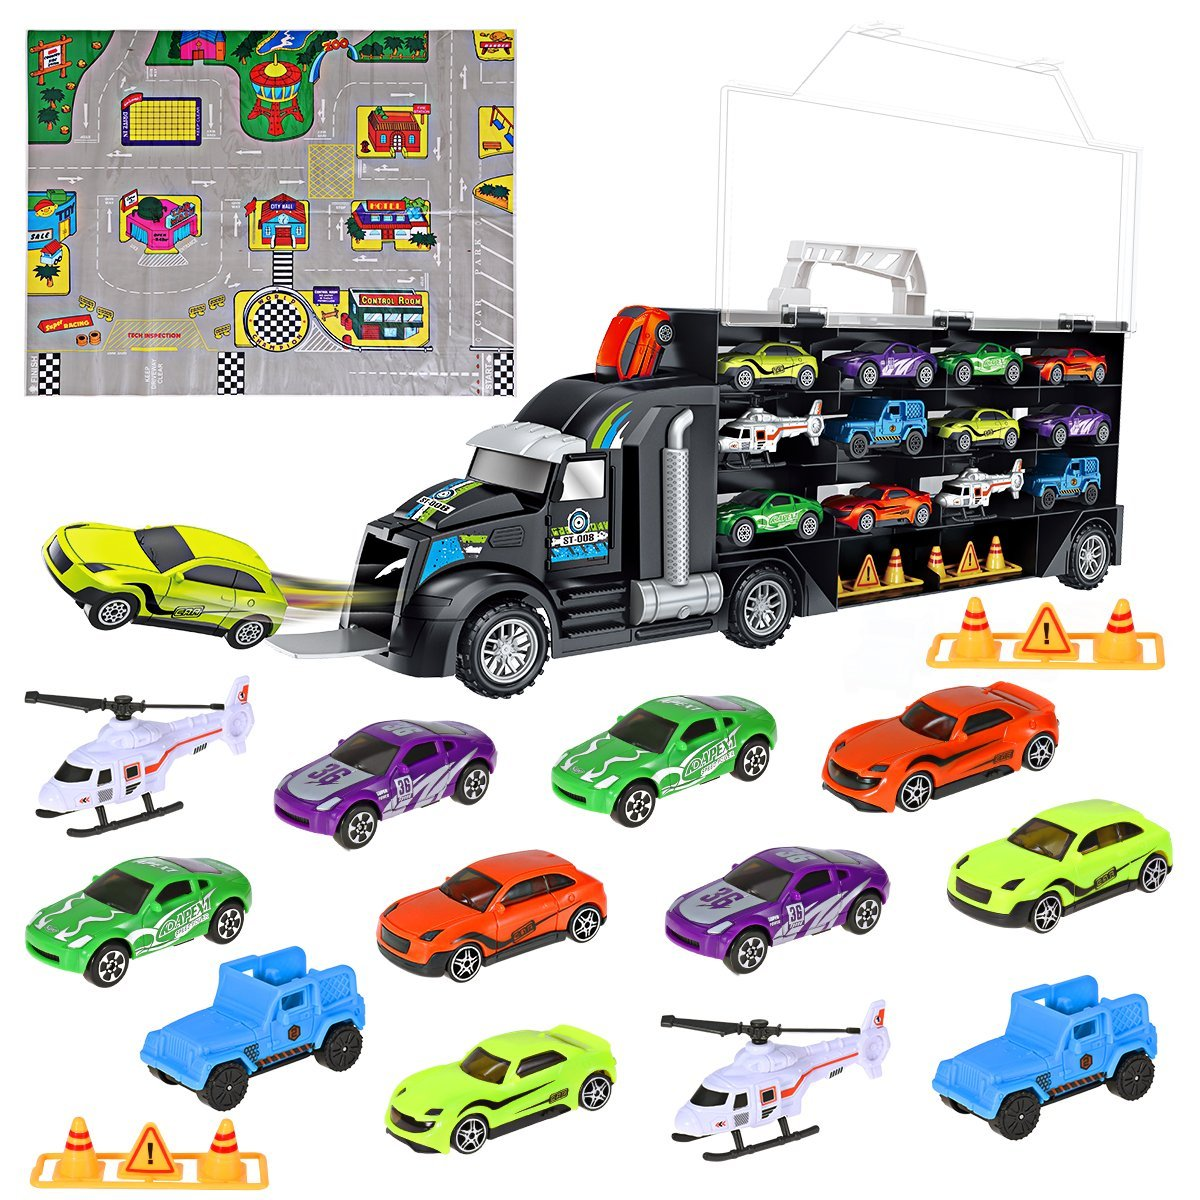 iBaseToy Toy Cars, Transport Car Carrier Truck Educational Vehicles Toy Car Set Toddlers, Kids, Boys Girls (Includes 8 Sports Car, 2 Off-Road Cars, 2 Helicopters, 2 Roadblocks 1 Town Map)